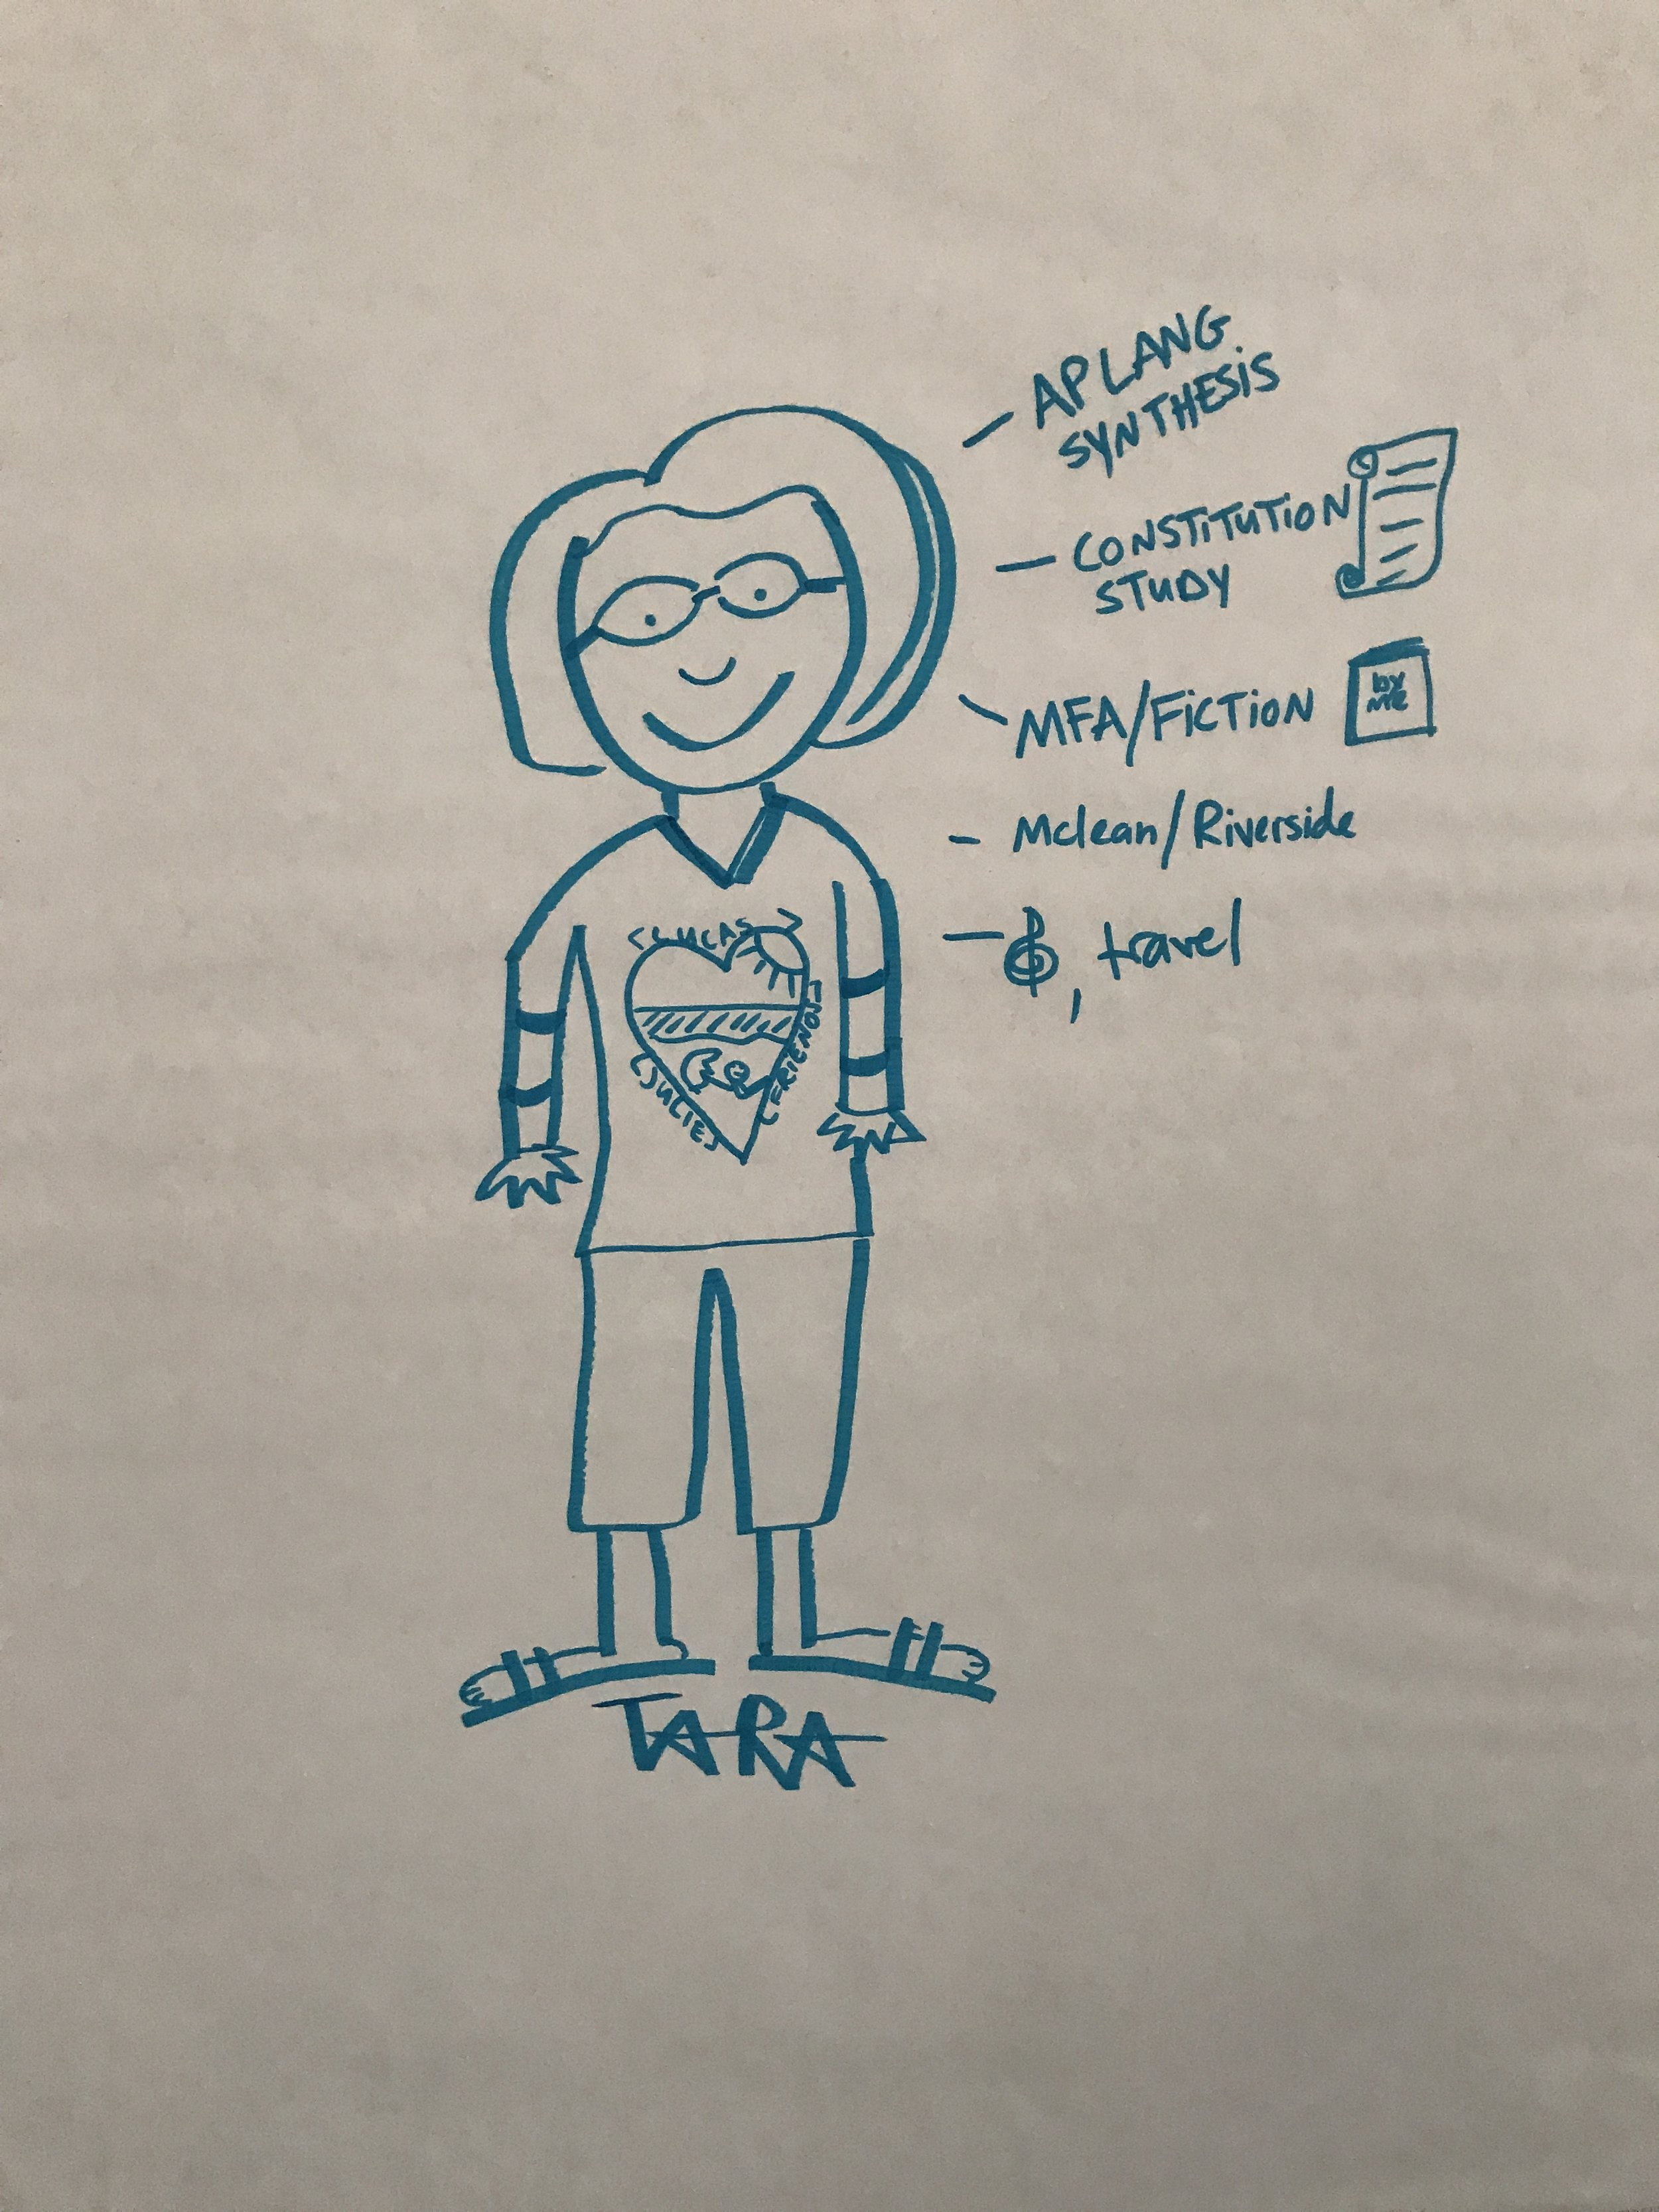 A participant's sketch from one of our content sessions. Participants self-assessed where their understanding was on performance-based assessment and then participated in one of four content sessions personalized to that level of learning.